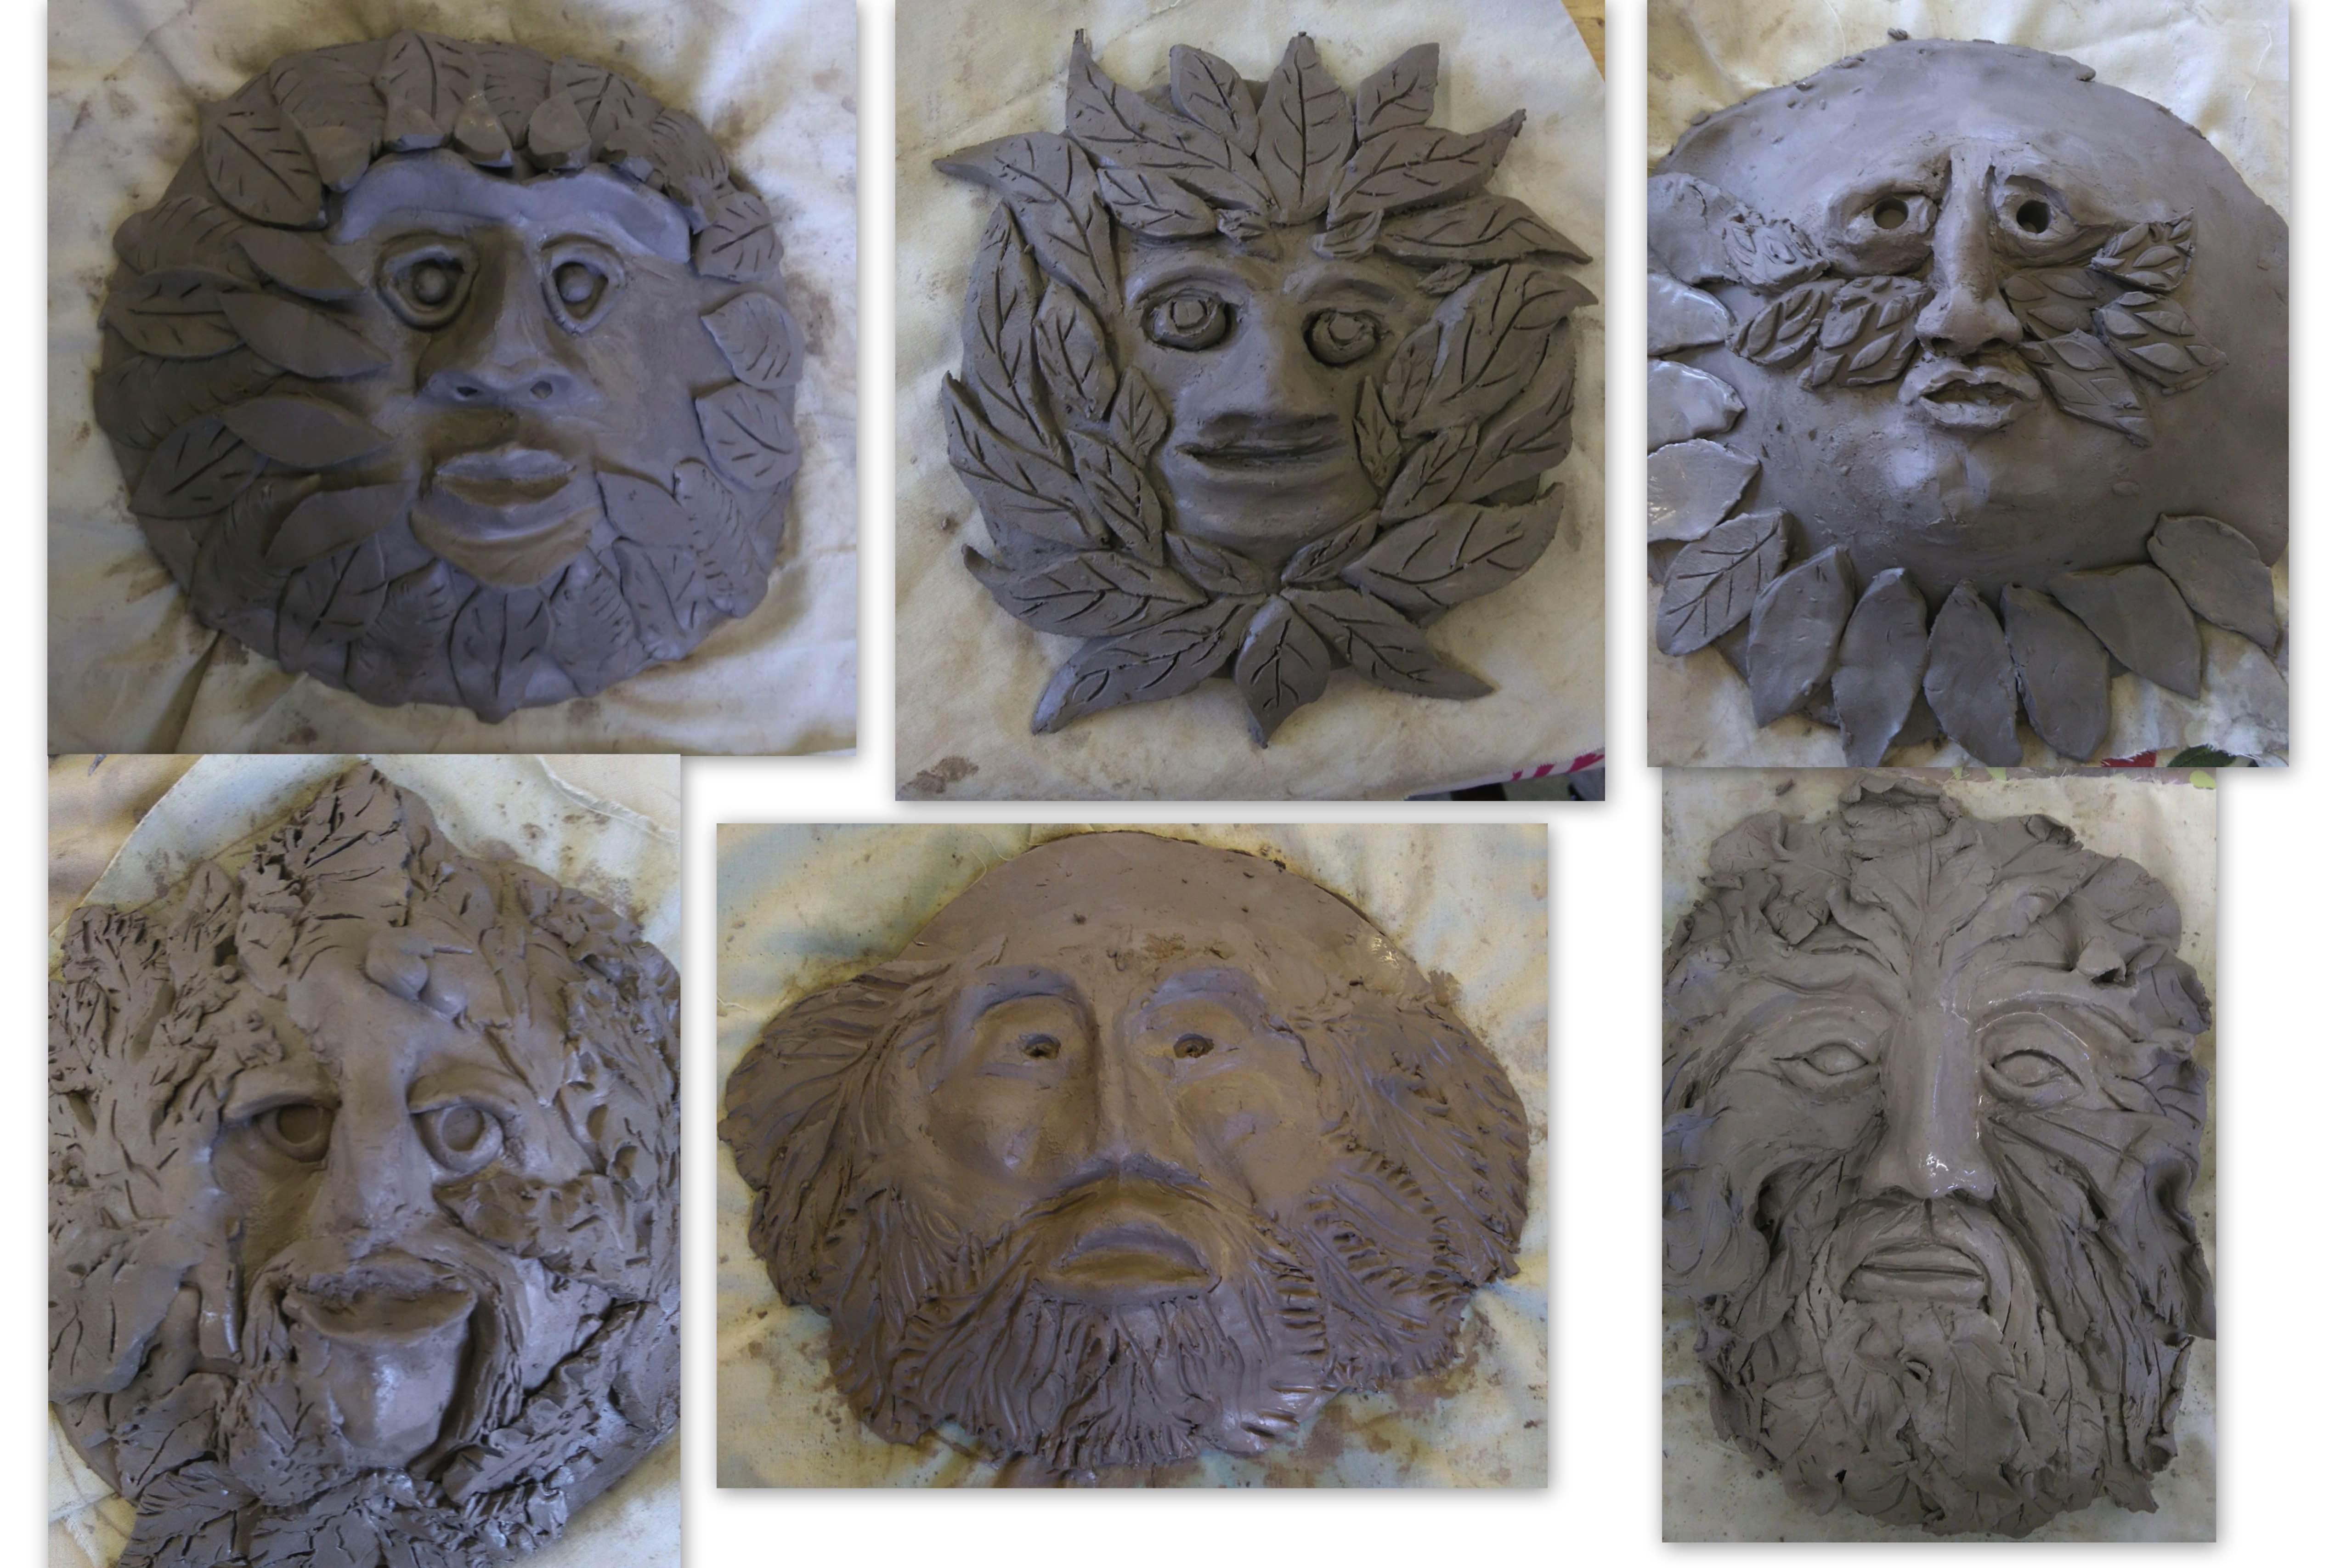 Claywork masks